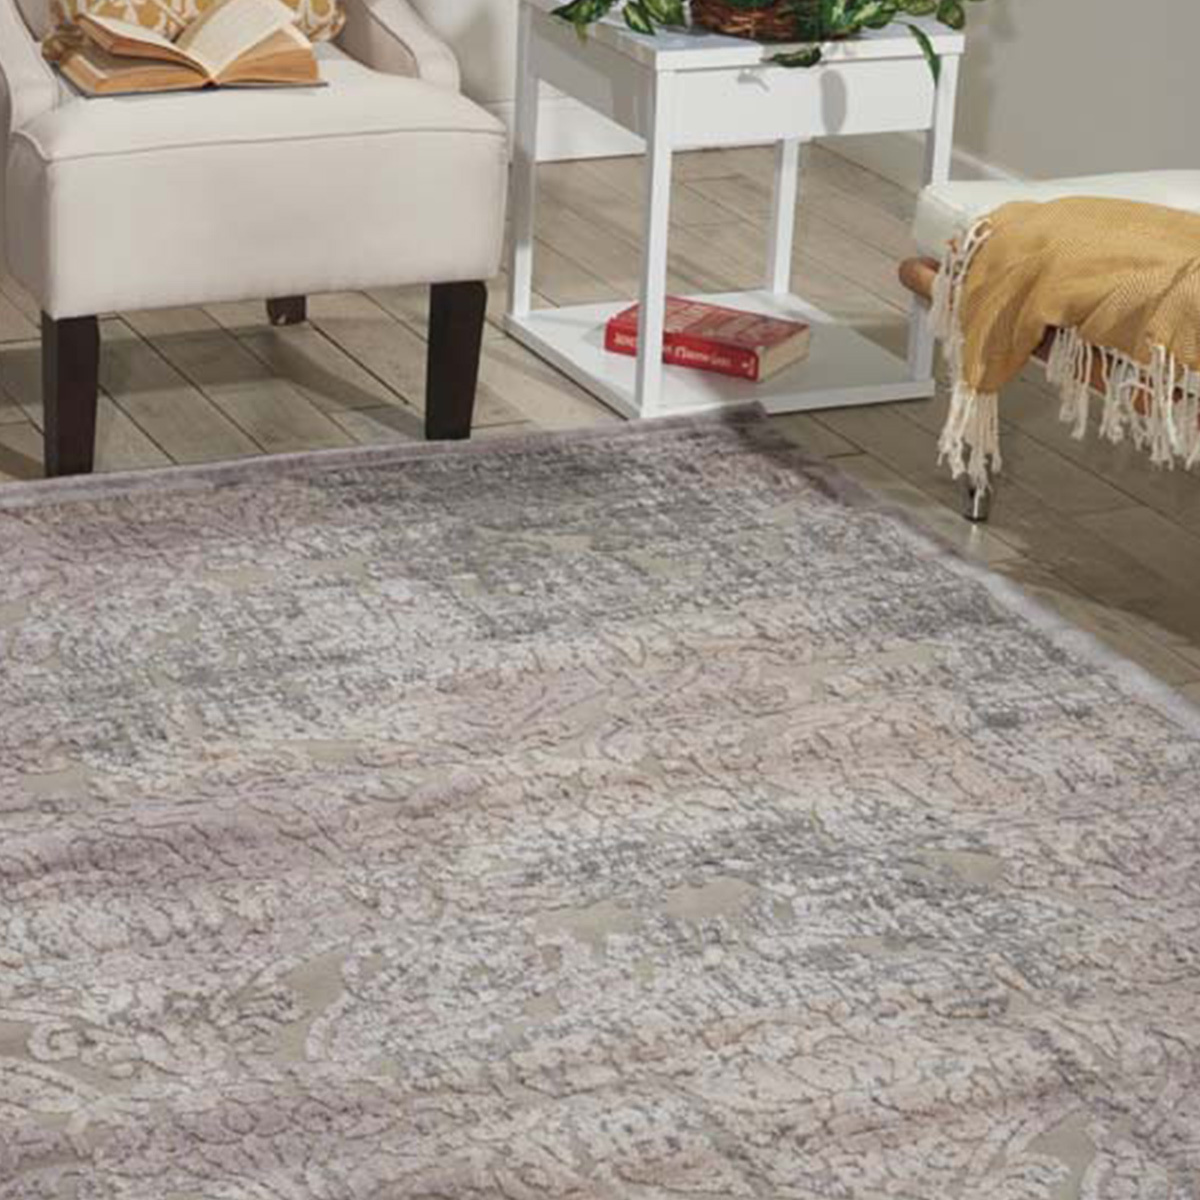 Vintage gray antique rug with a damask pattern. photo